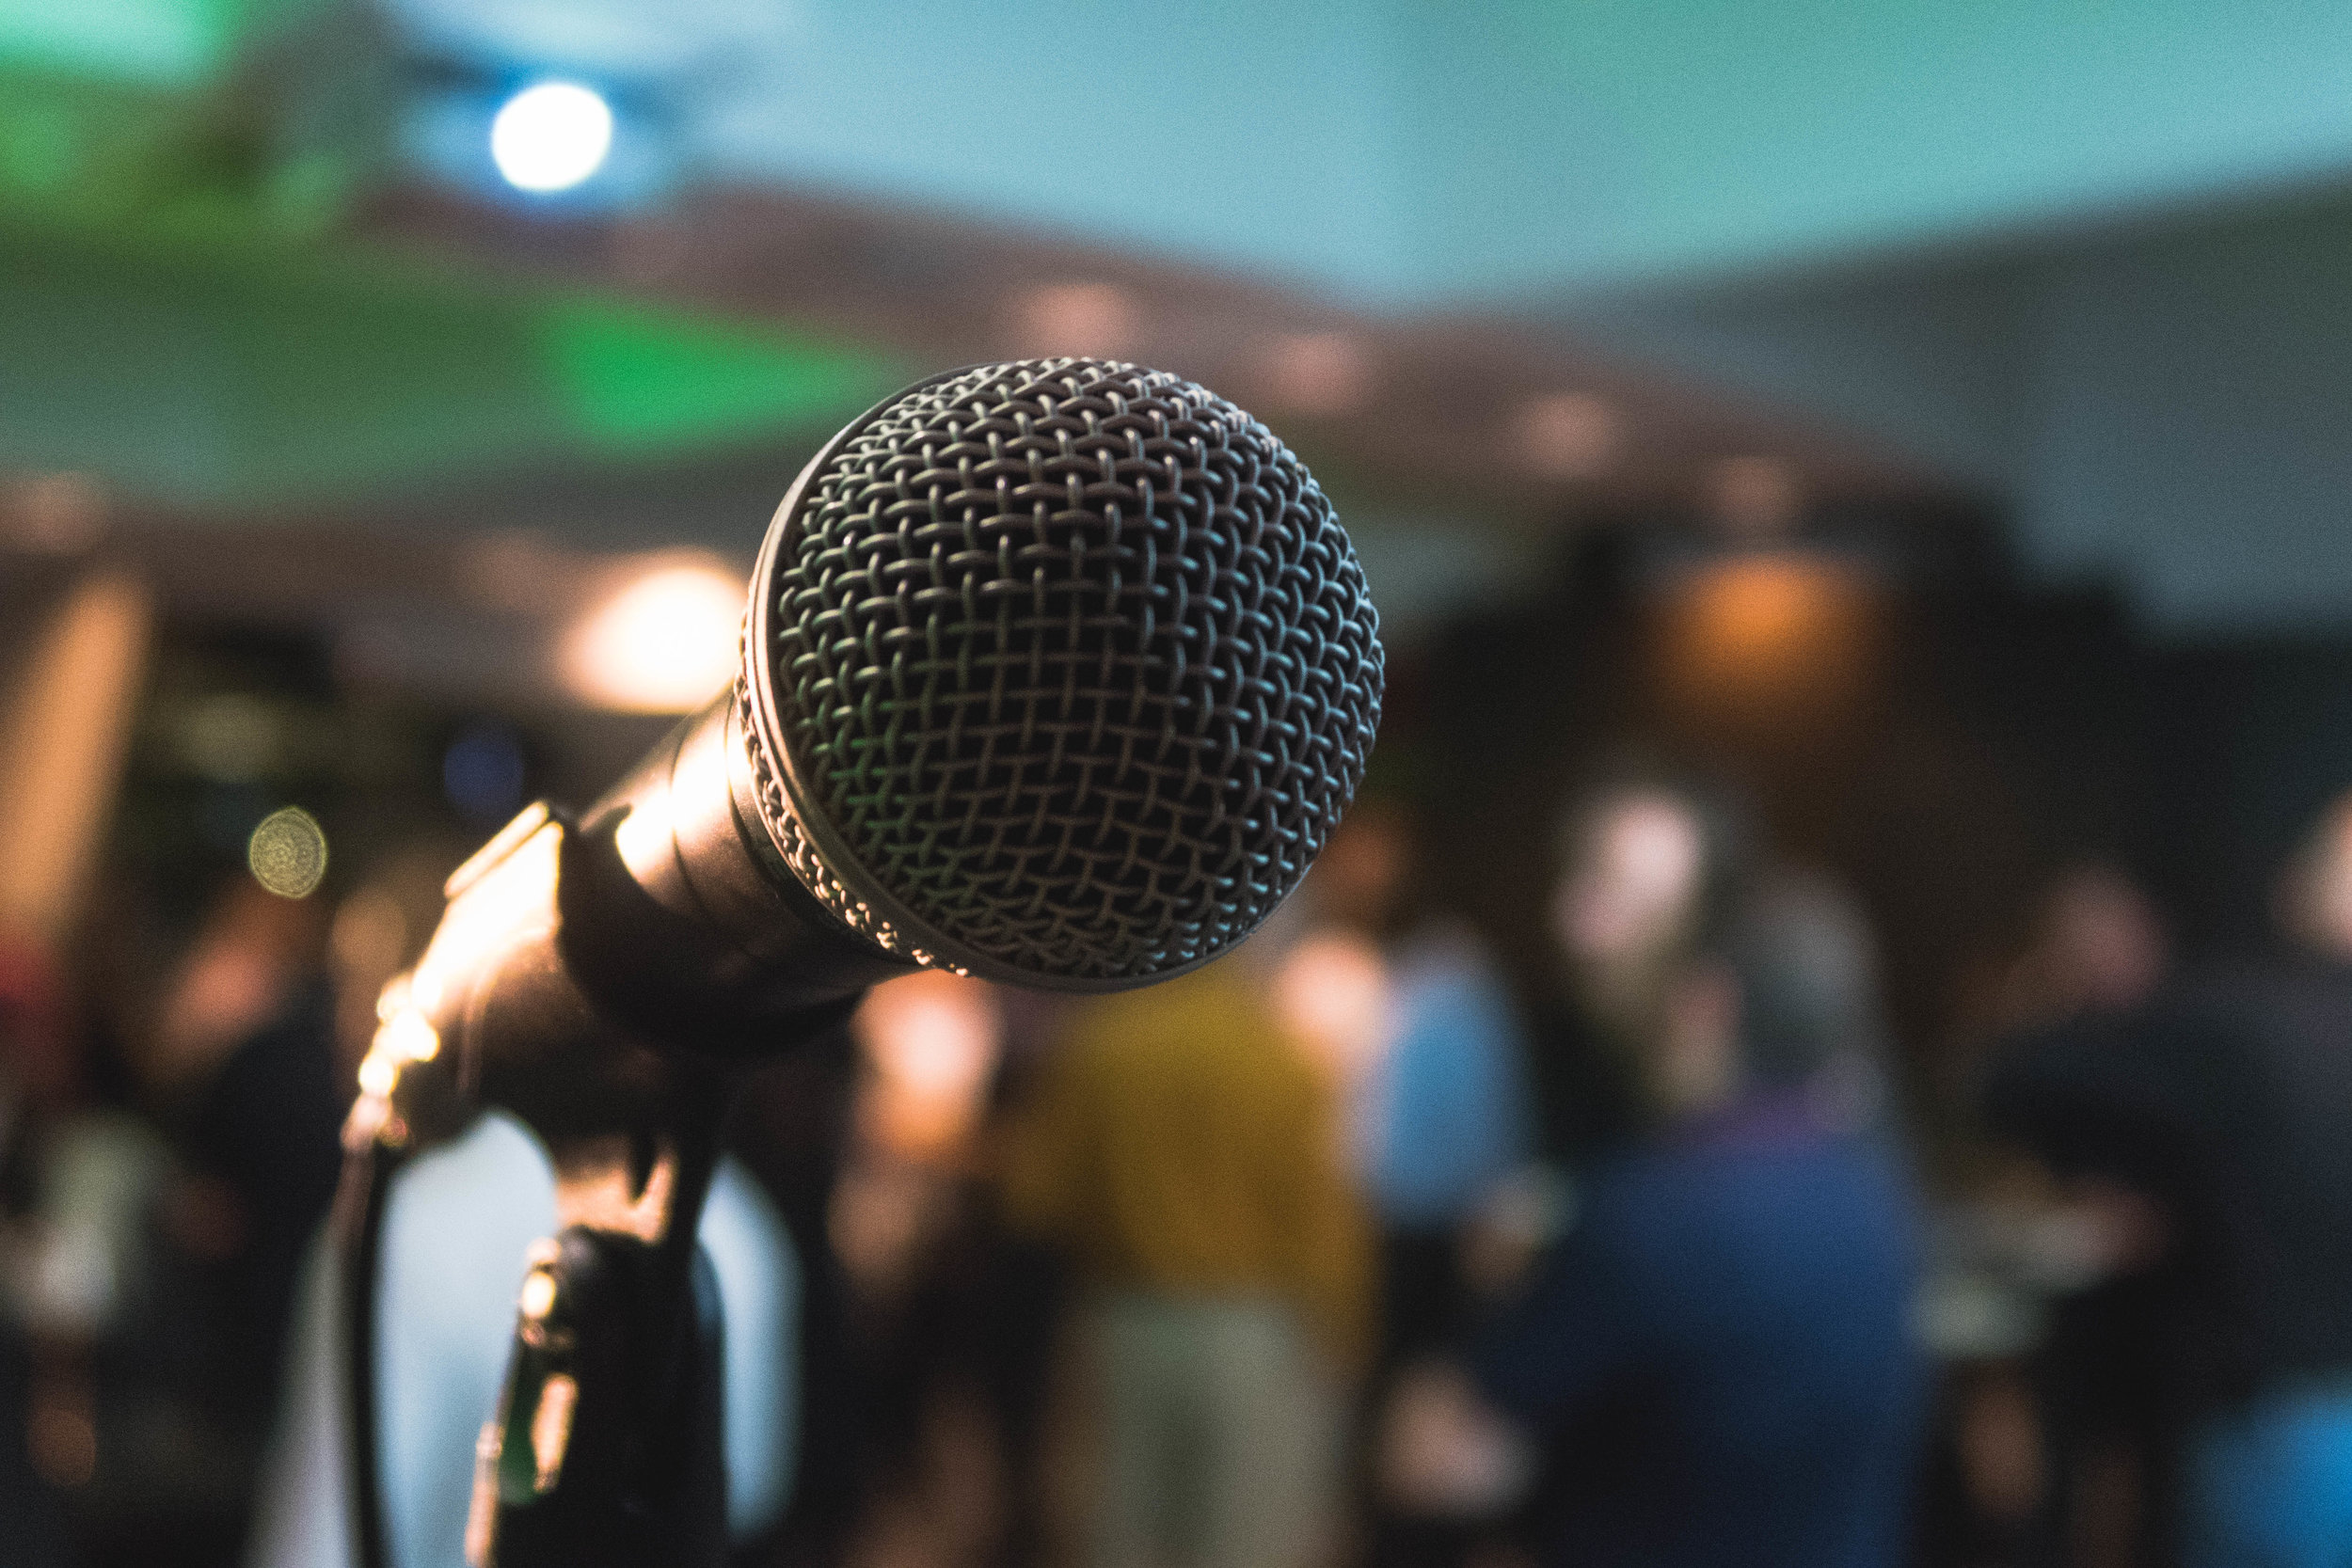 Public Speaking - To invite a speaker to your event and to learn about the different topics The Cottage frequently speaks on, please click here.